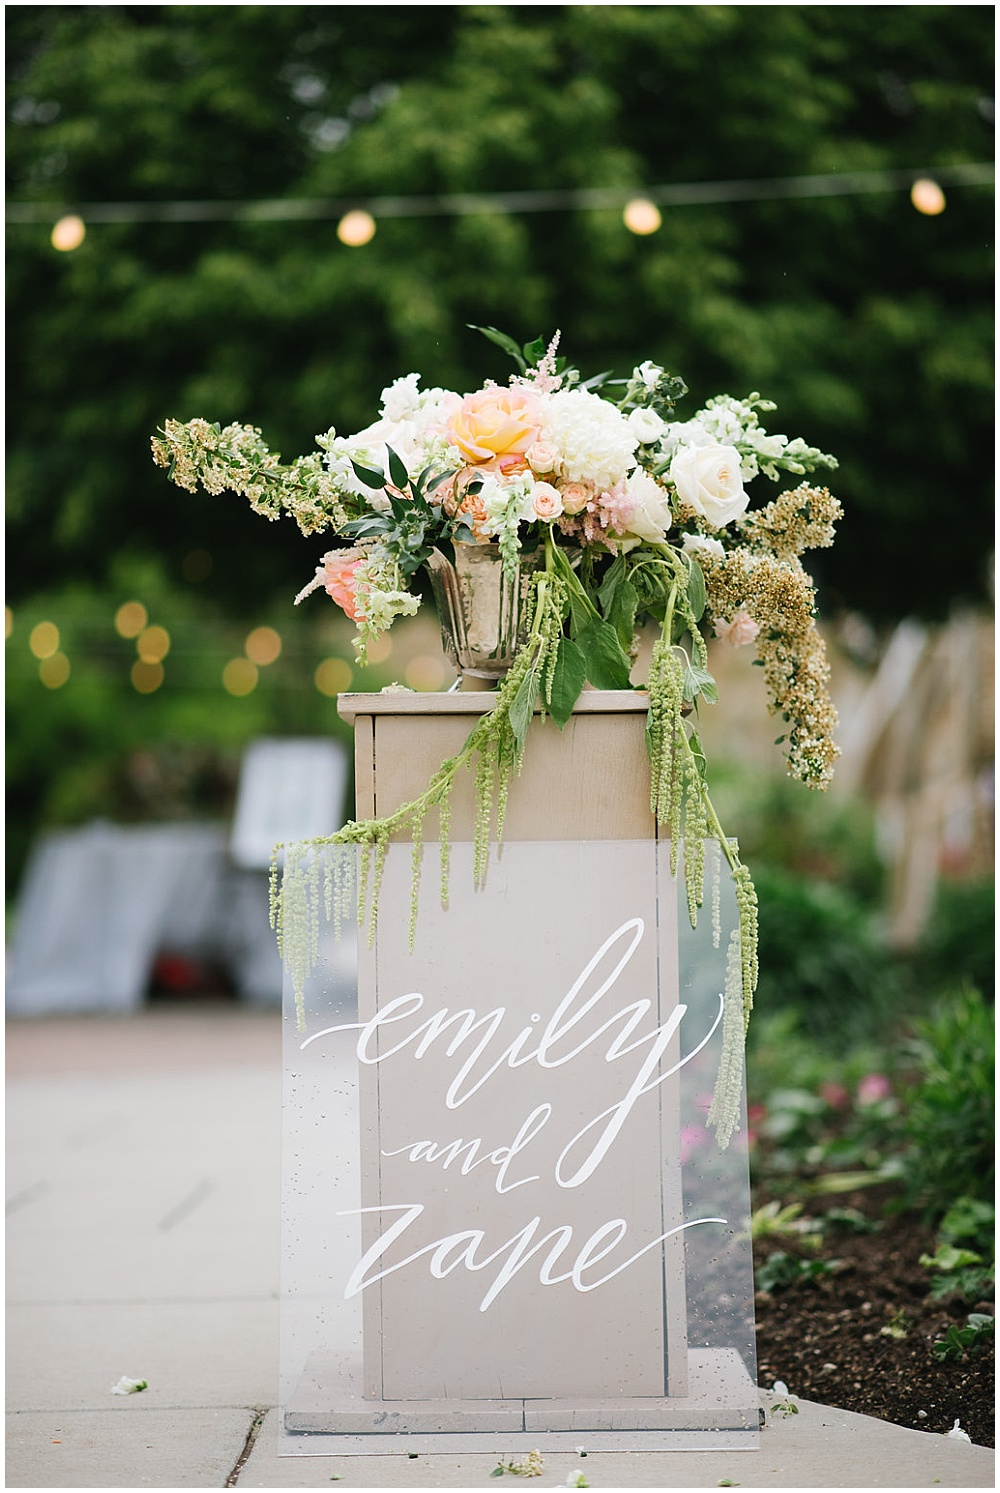 6 ways to elevate your wedding details; acrylic welcome sign; acrylic sign; hand lettered wedding sign; blush and white ceremony florals